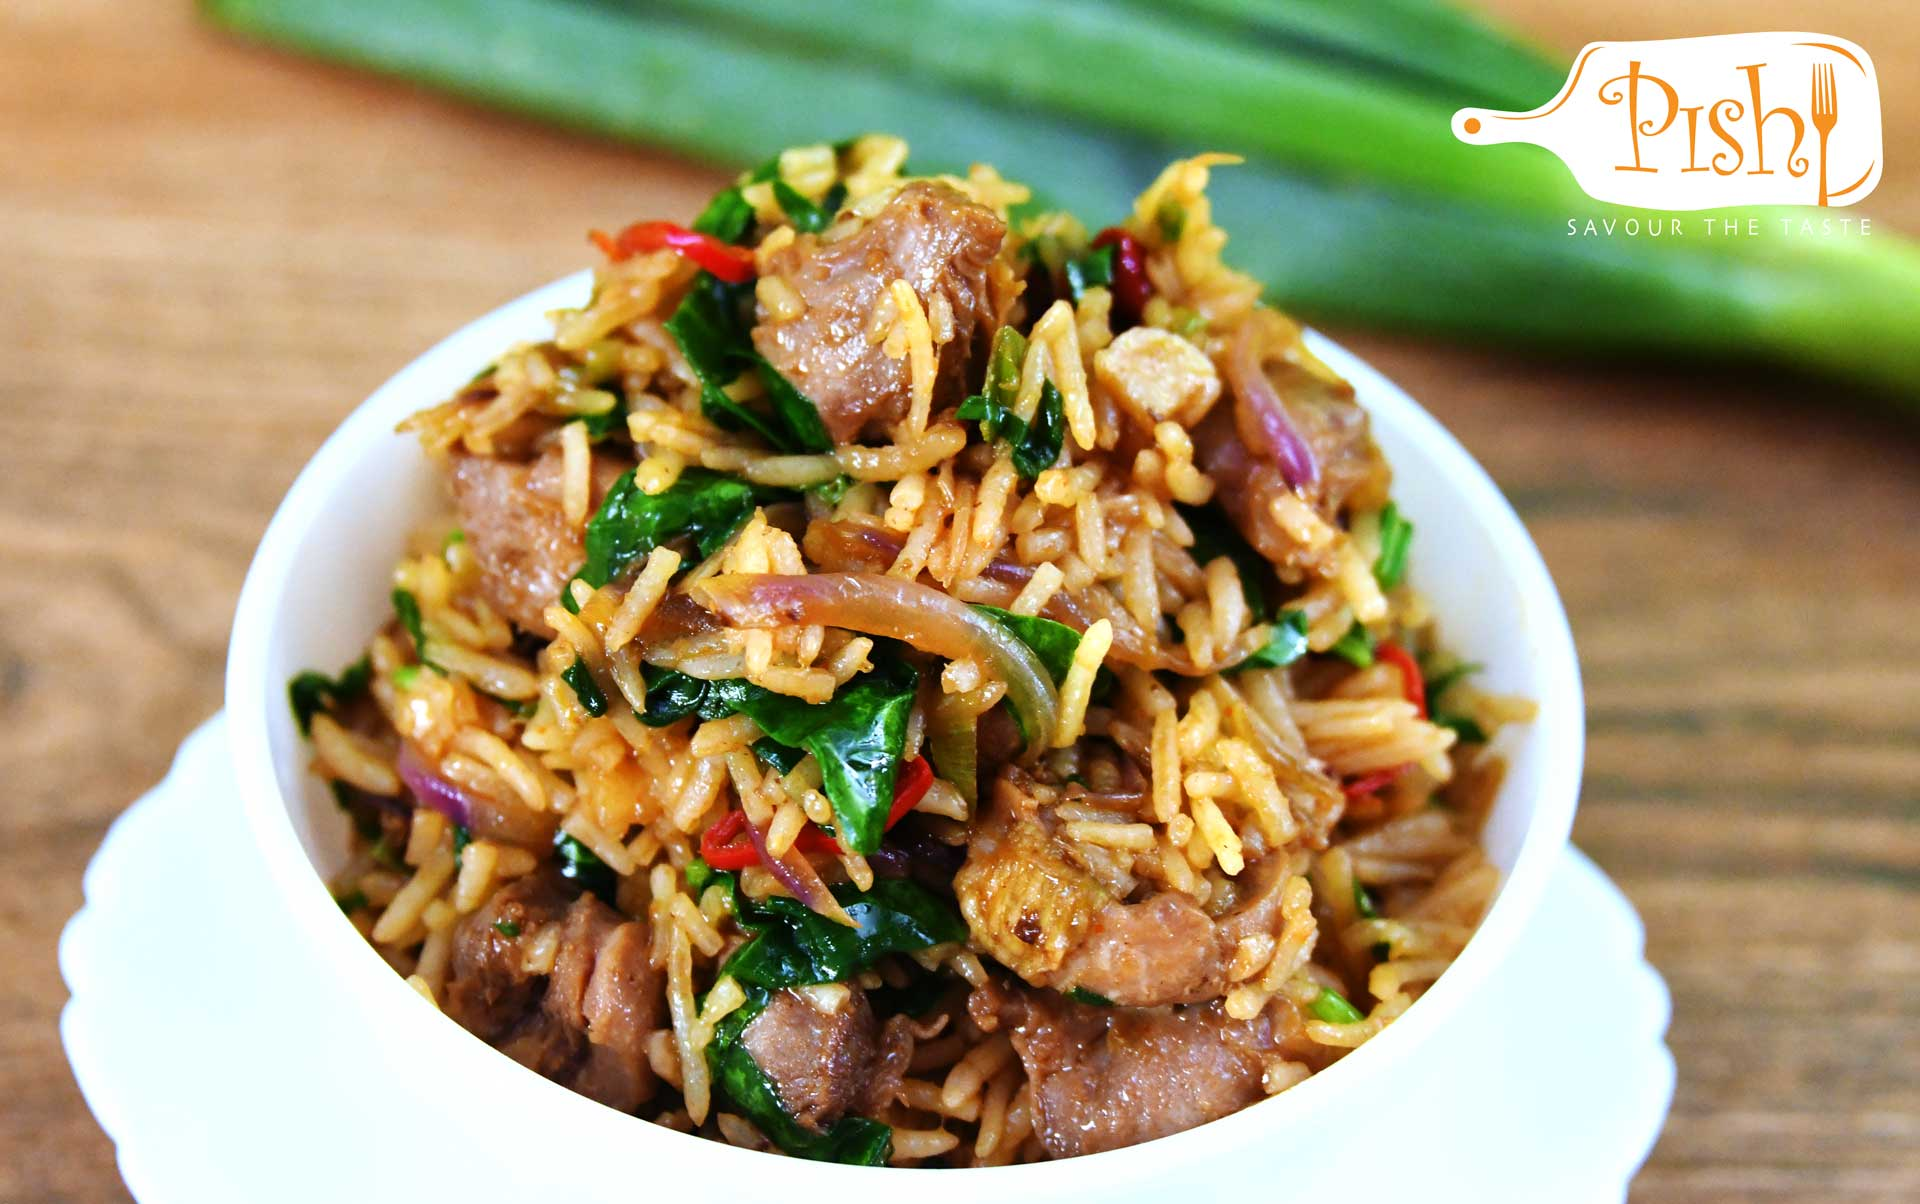 Spicy Gizzard Stir-fry